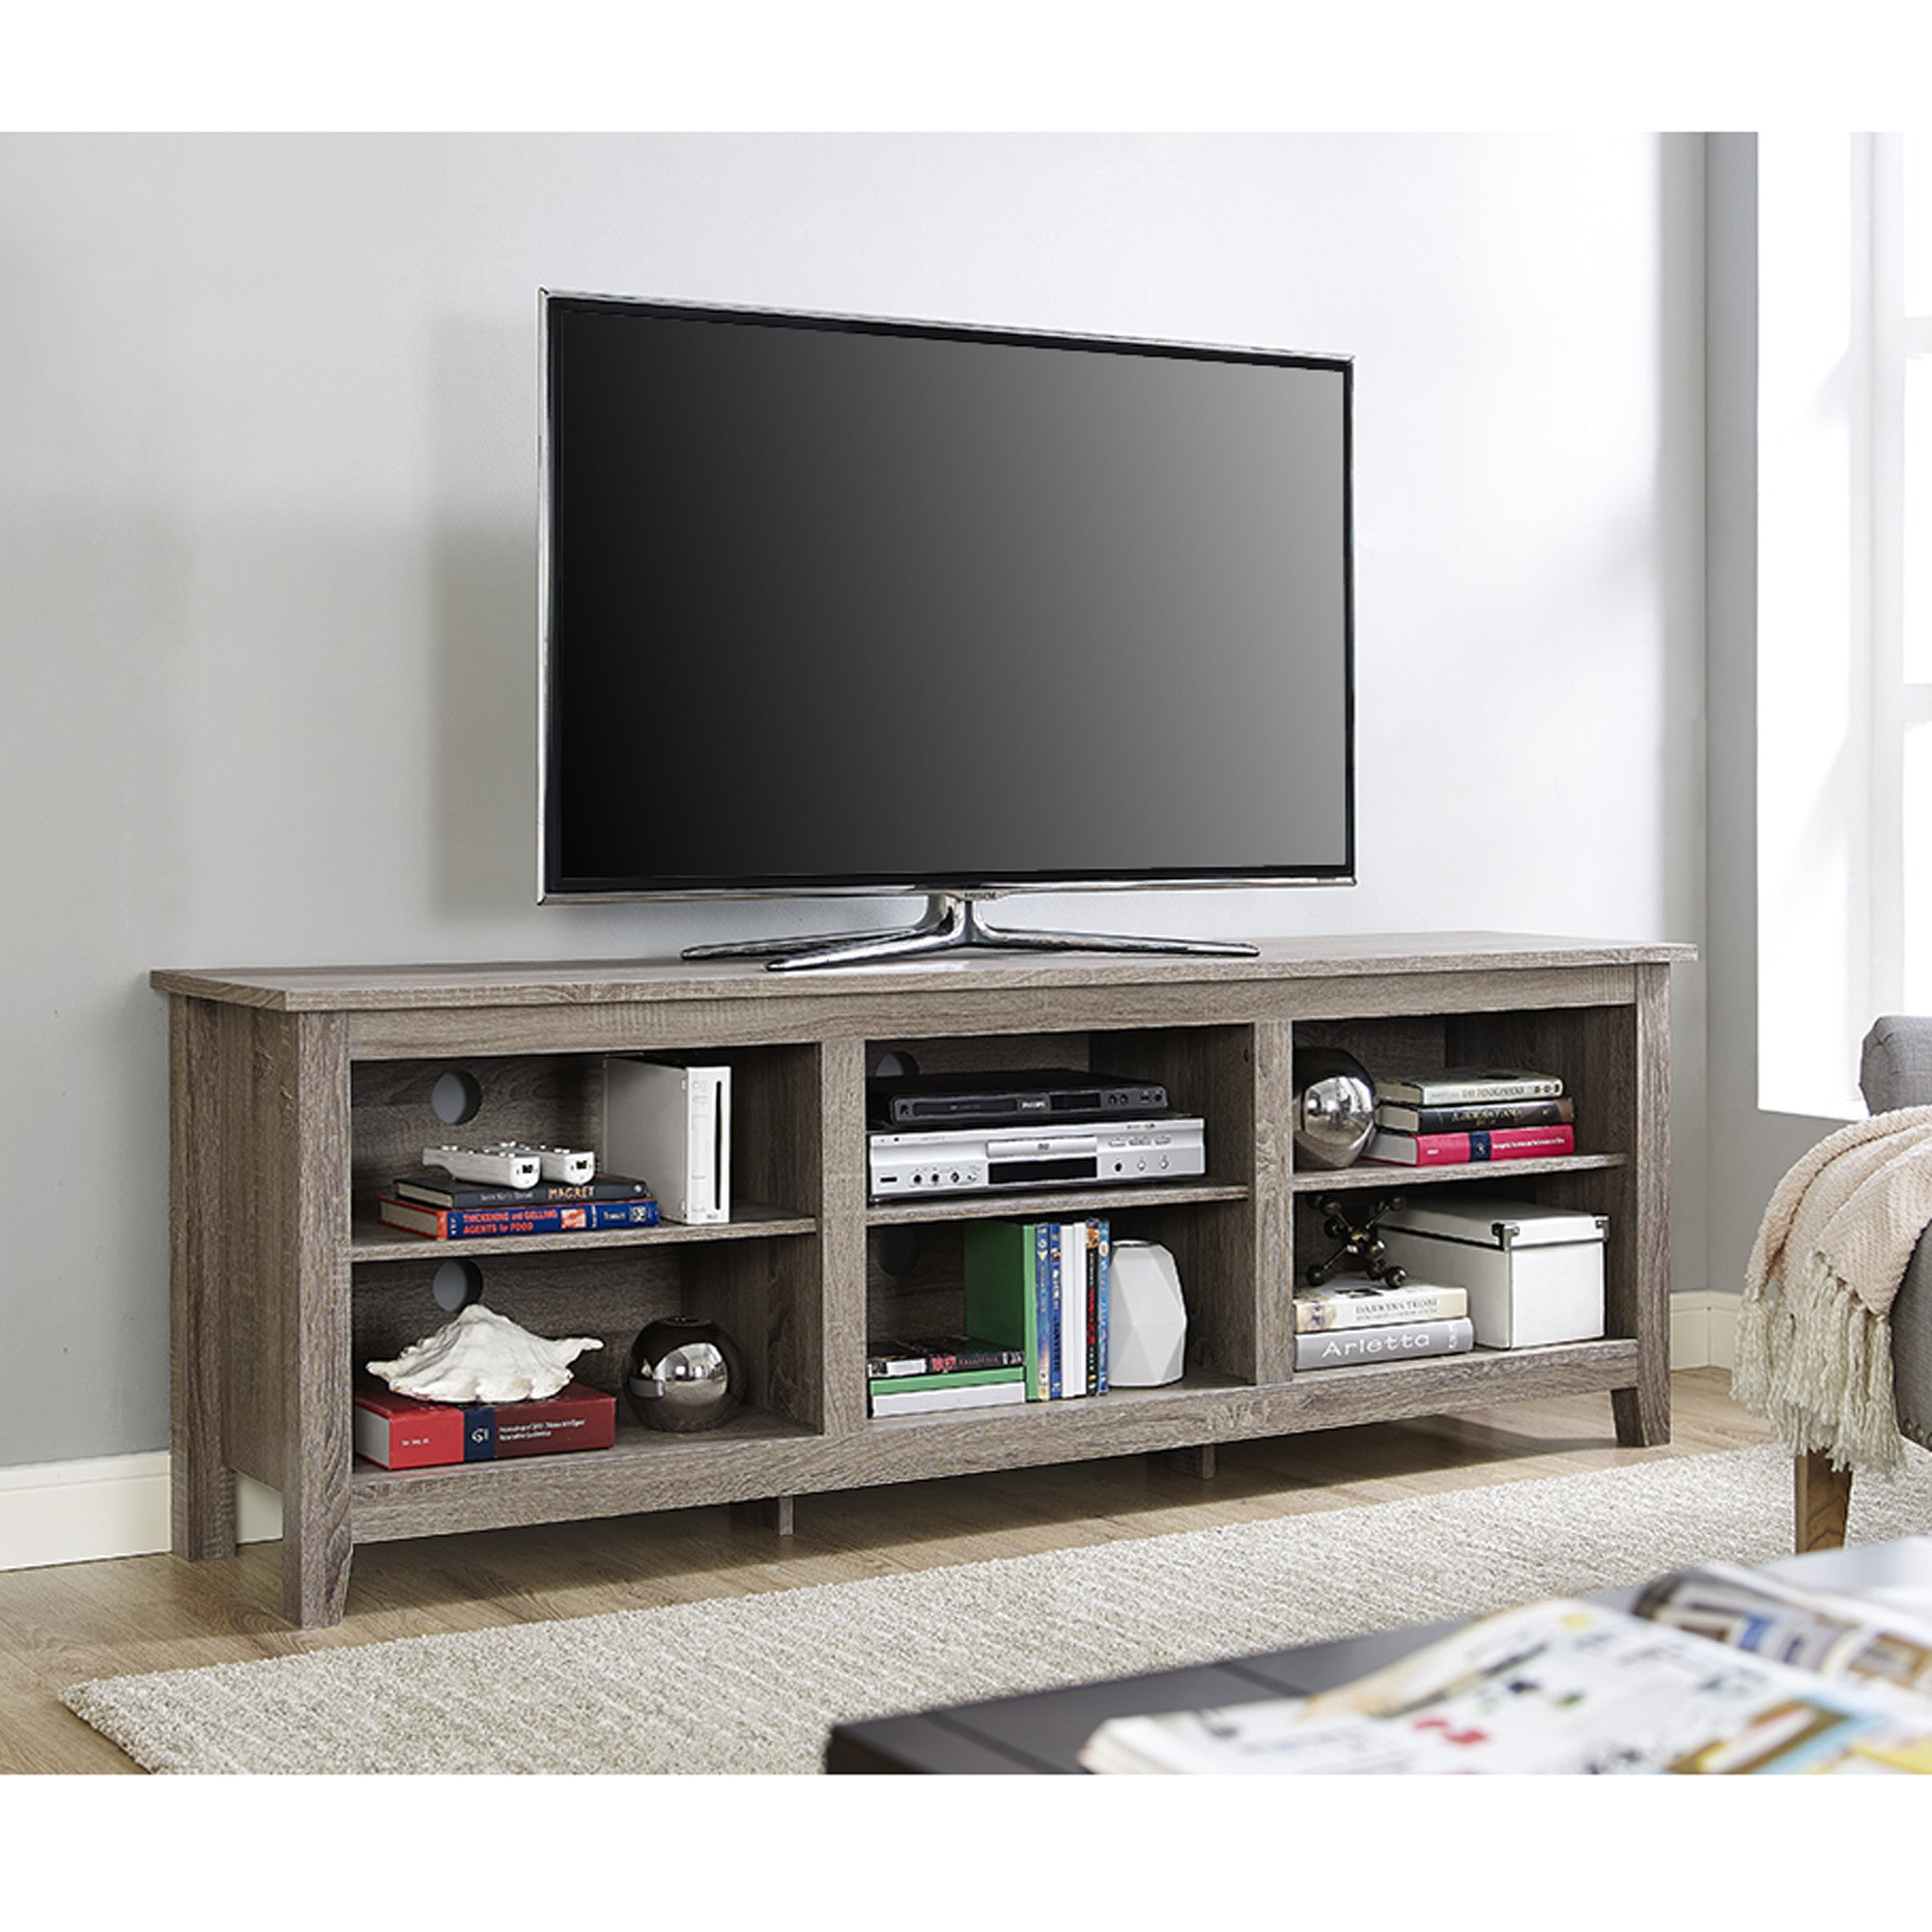 open tv stands open tv stands    open tv stands - modern open concept tv stand in driftwood finish – tvstandcom